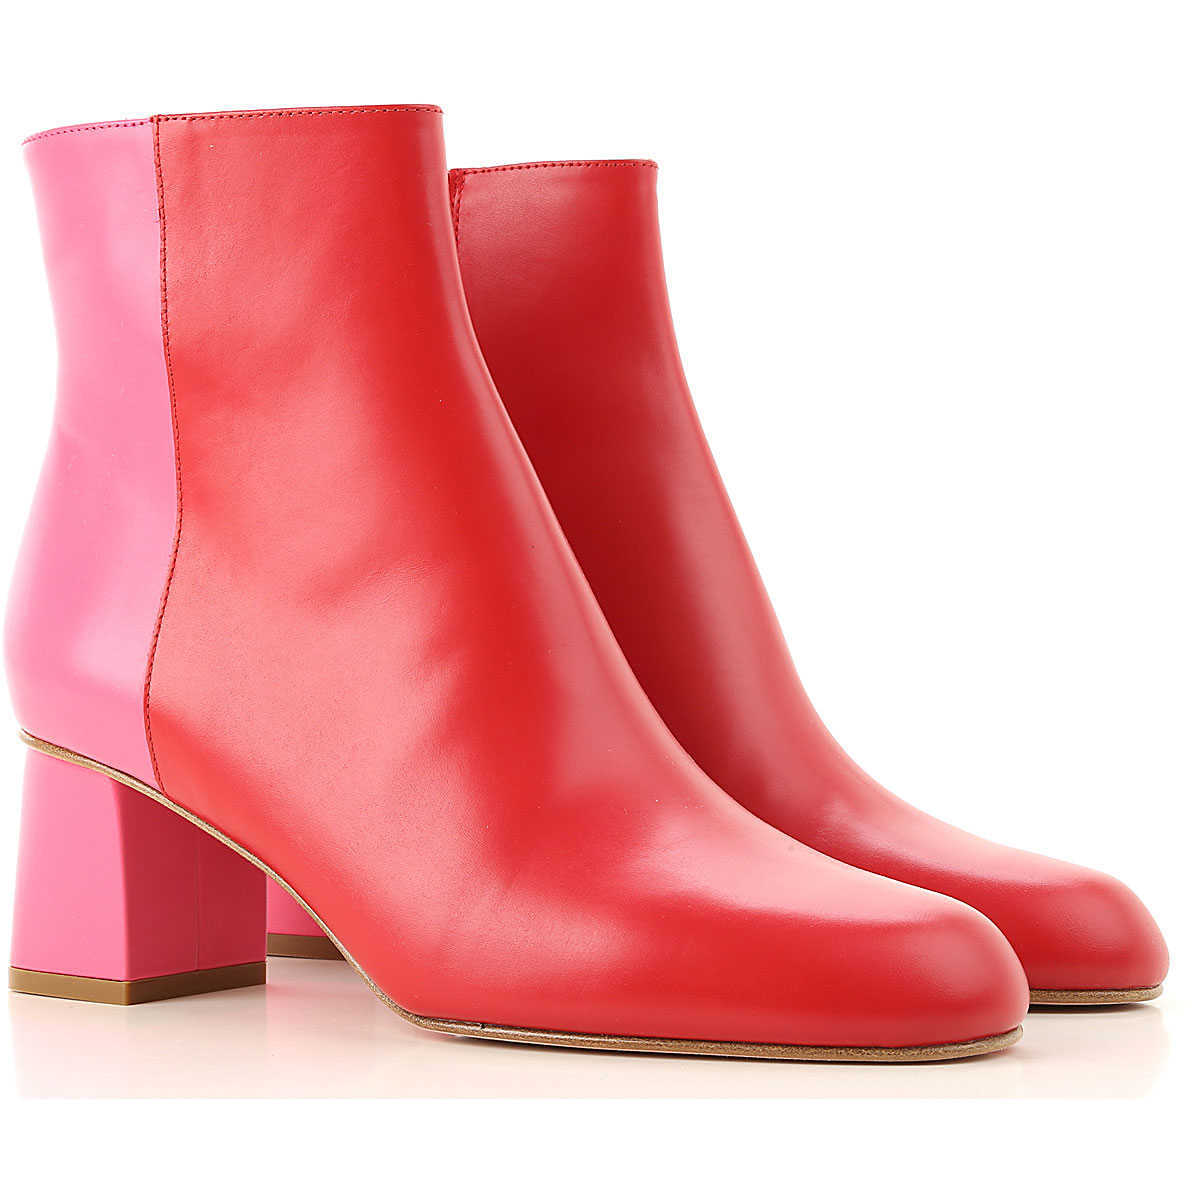 RED Valentino Boots for Women 3.5 4.5 5.5 6.5 8.5 Booties UK - GOOFASH